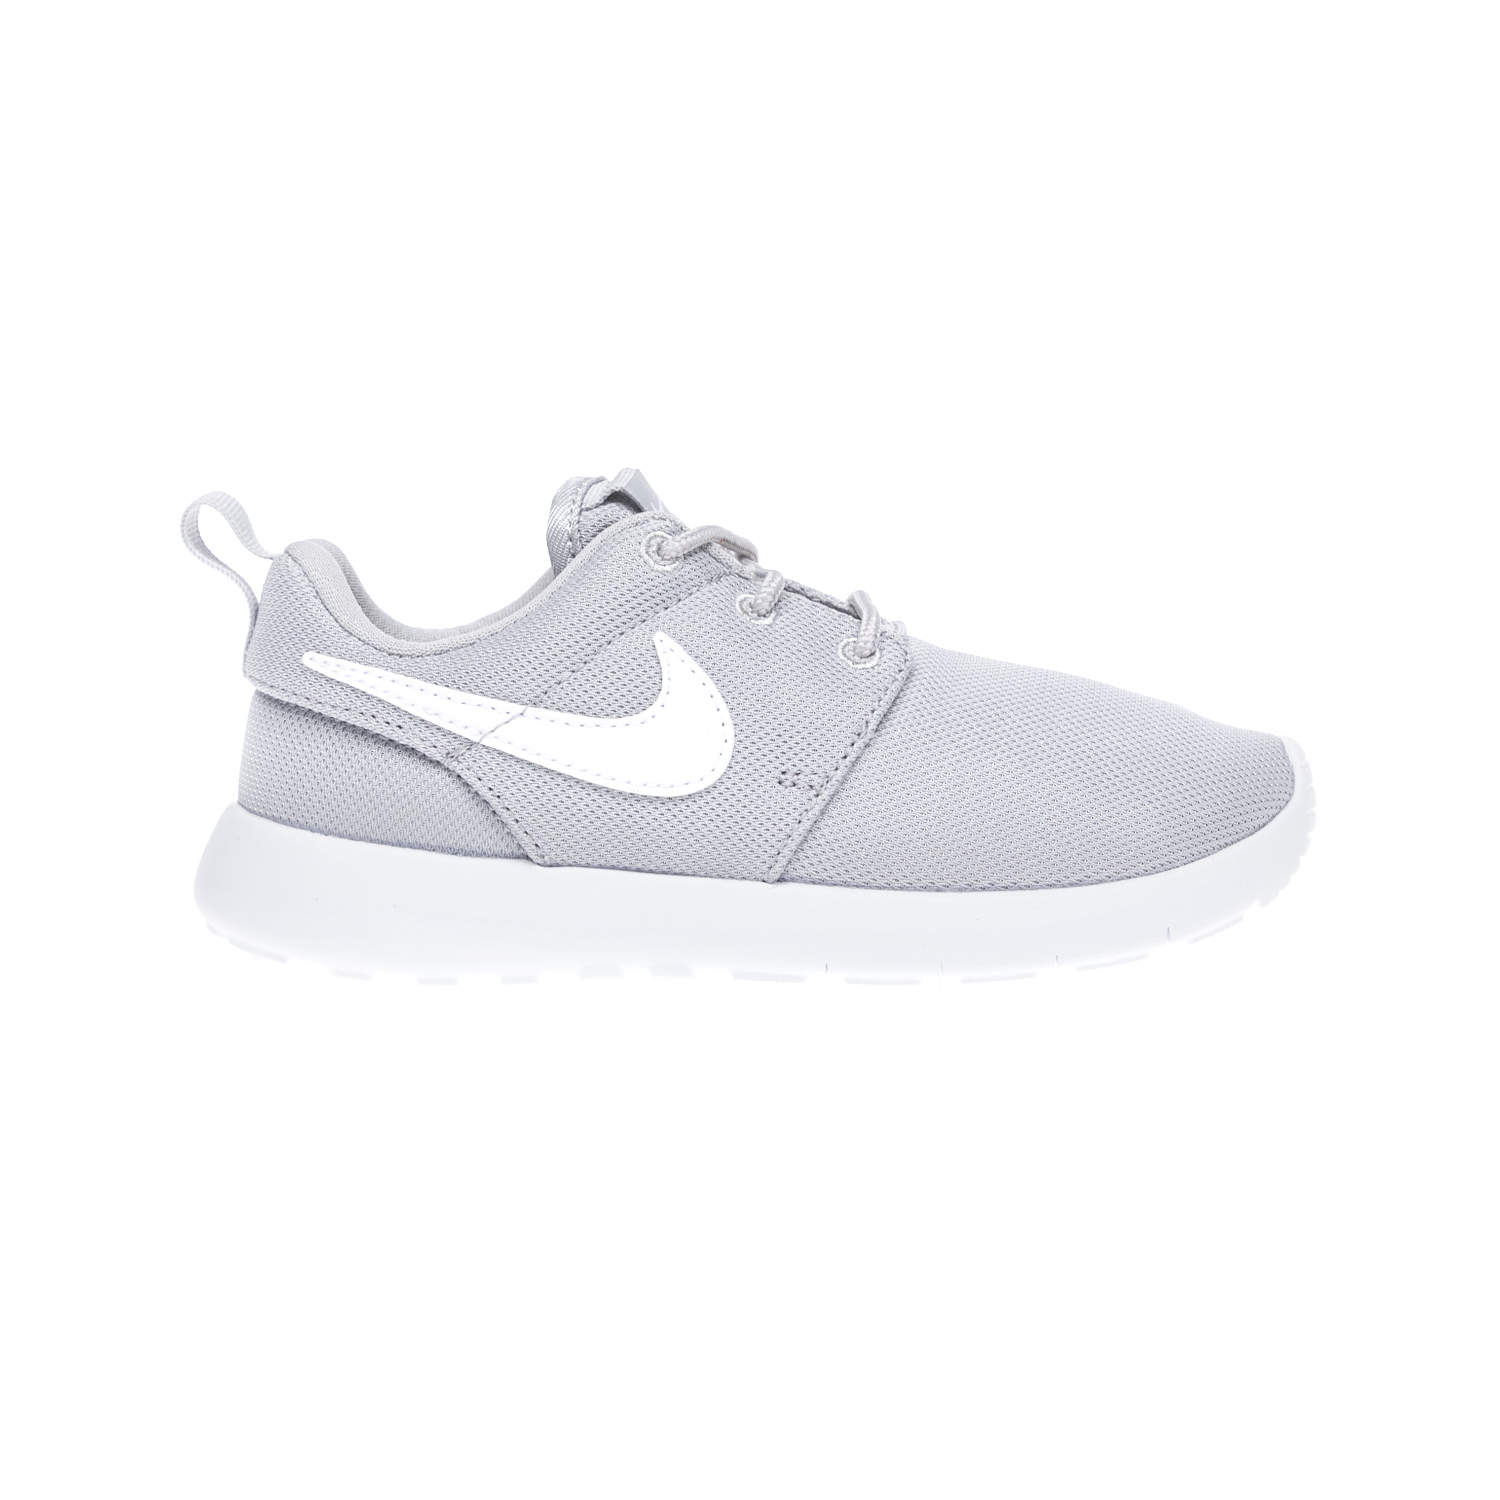 NIKE - Παιδικά παπούτσια NIKE ROSHE ONE (PS) γκρι - IFY Shoes 7d790cb97f8